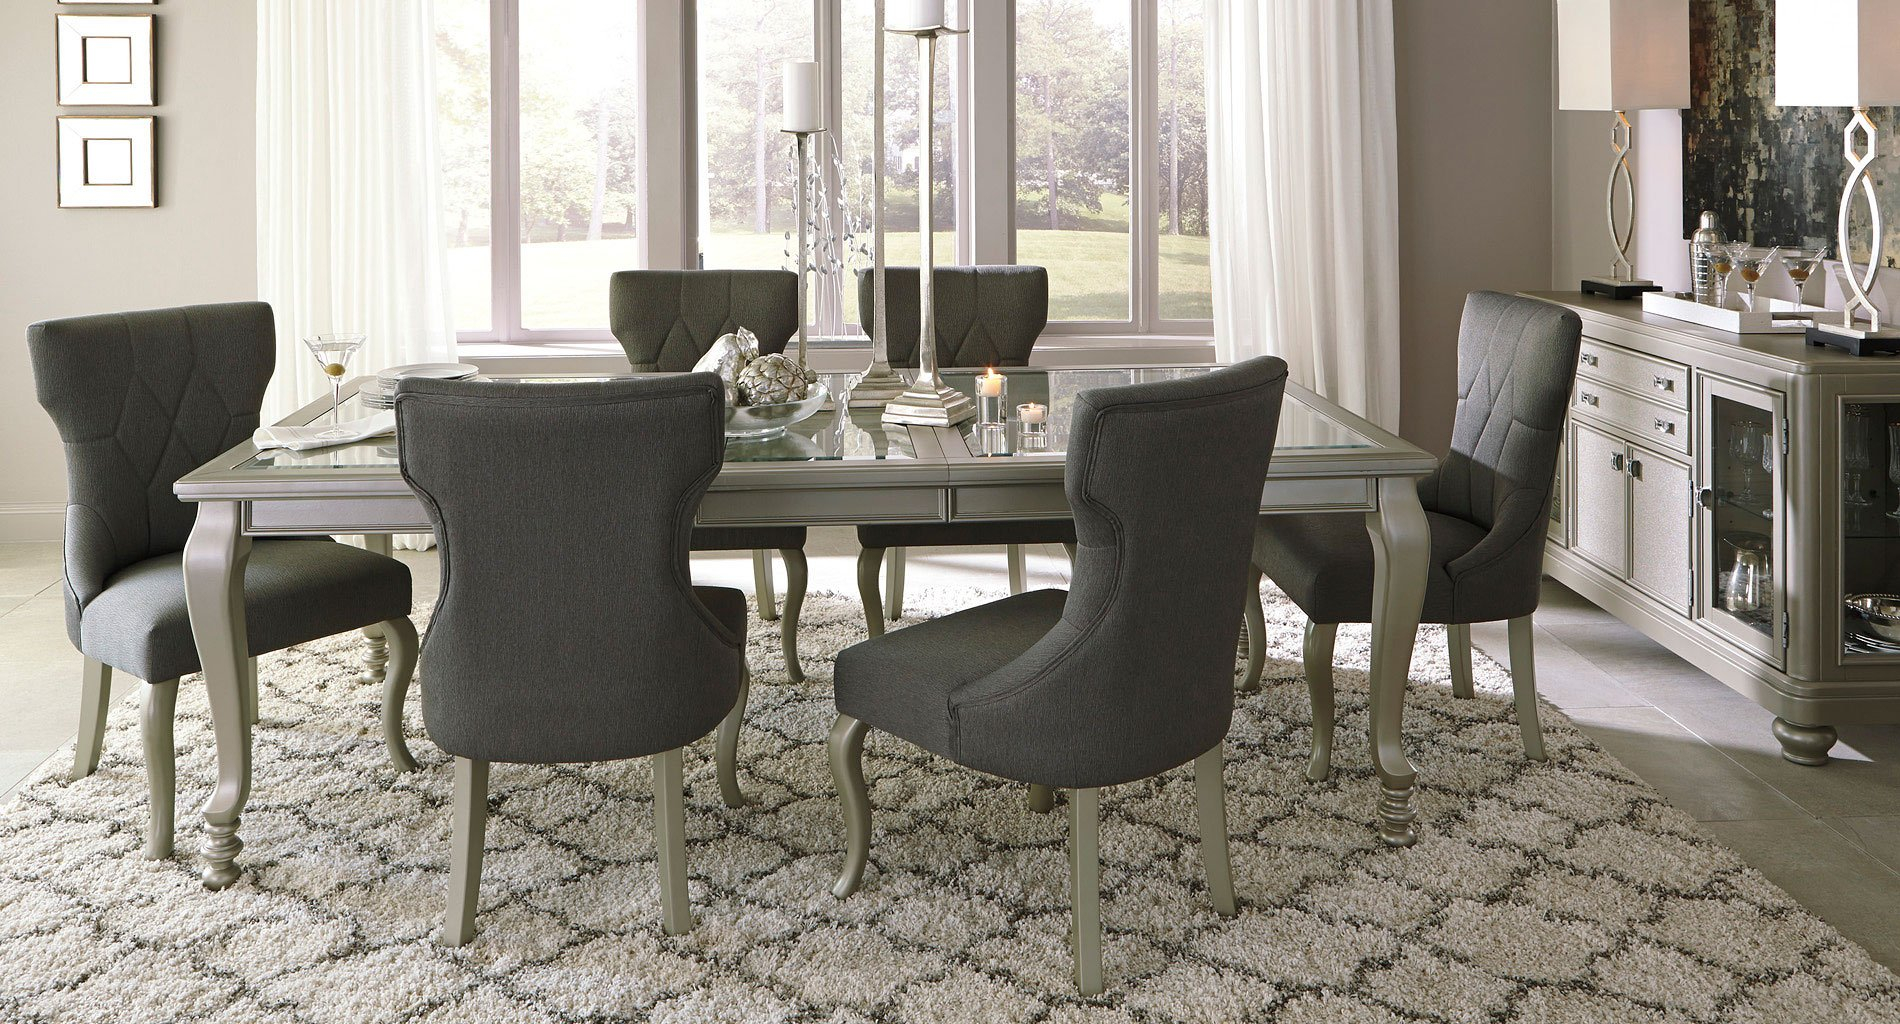 Coralayne Dining Room Set Signature Design Ashley 3 Reviews throughout 15 Clever Ways How to Make Dining And Living Room Sets